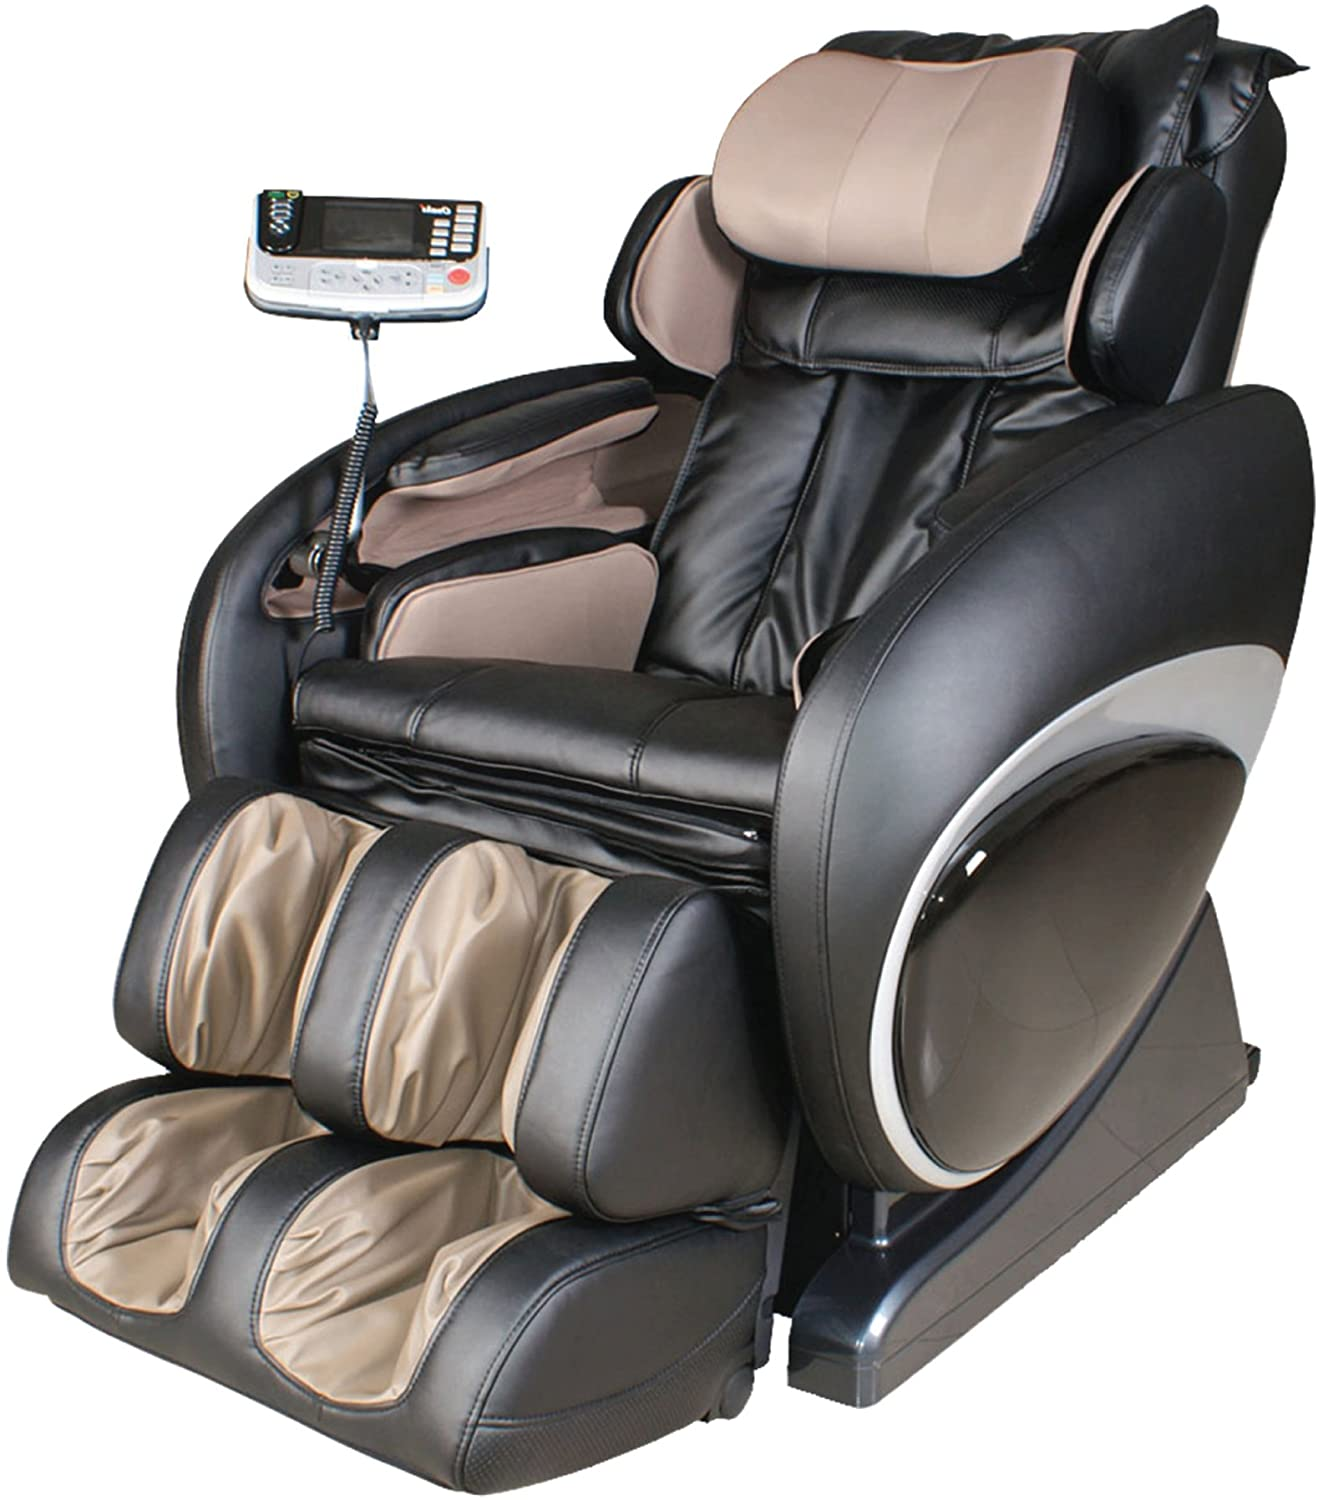 OSAKI Zero Gravity Full Body Massage Chair (OS-4000)